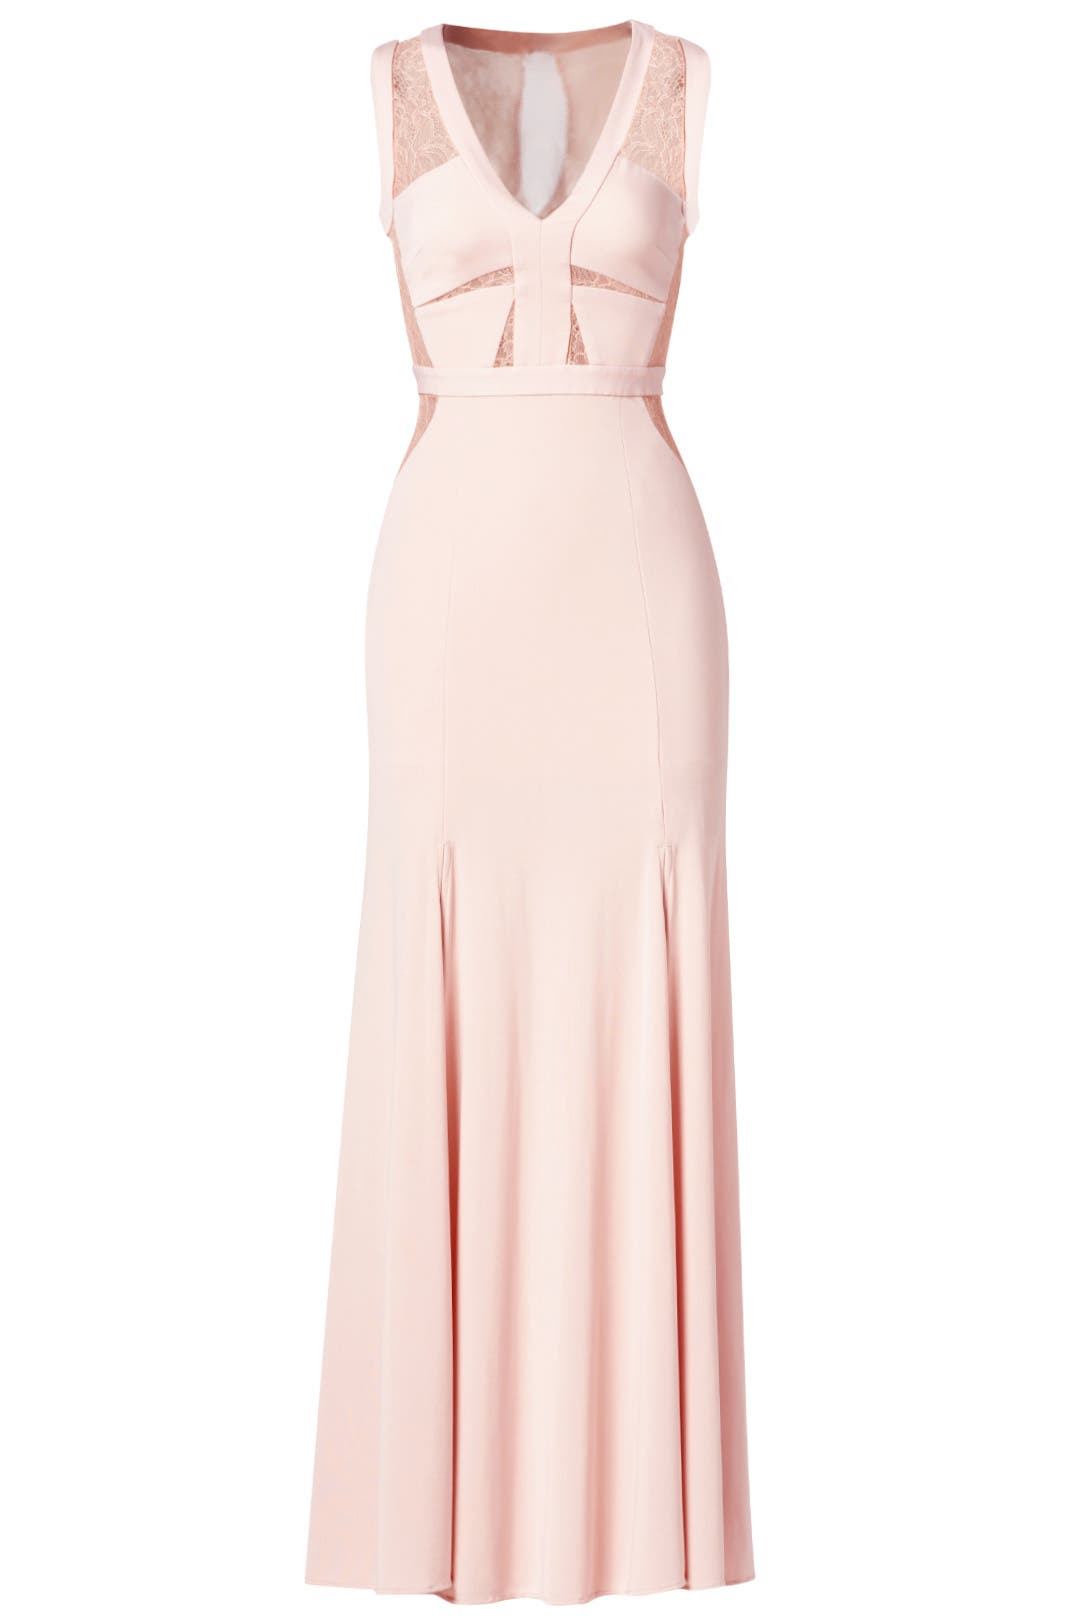 Last Summer Rose Gown by BCBGMAXAZRIA for $50 - $70 | Rent the Runway